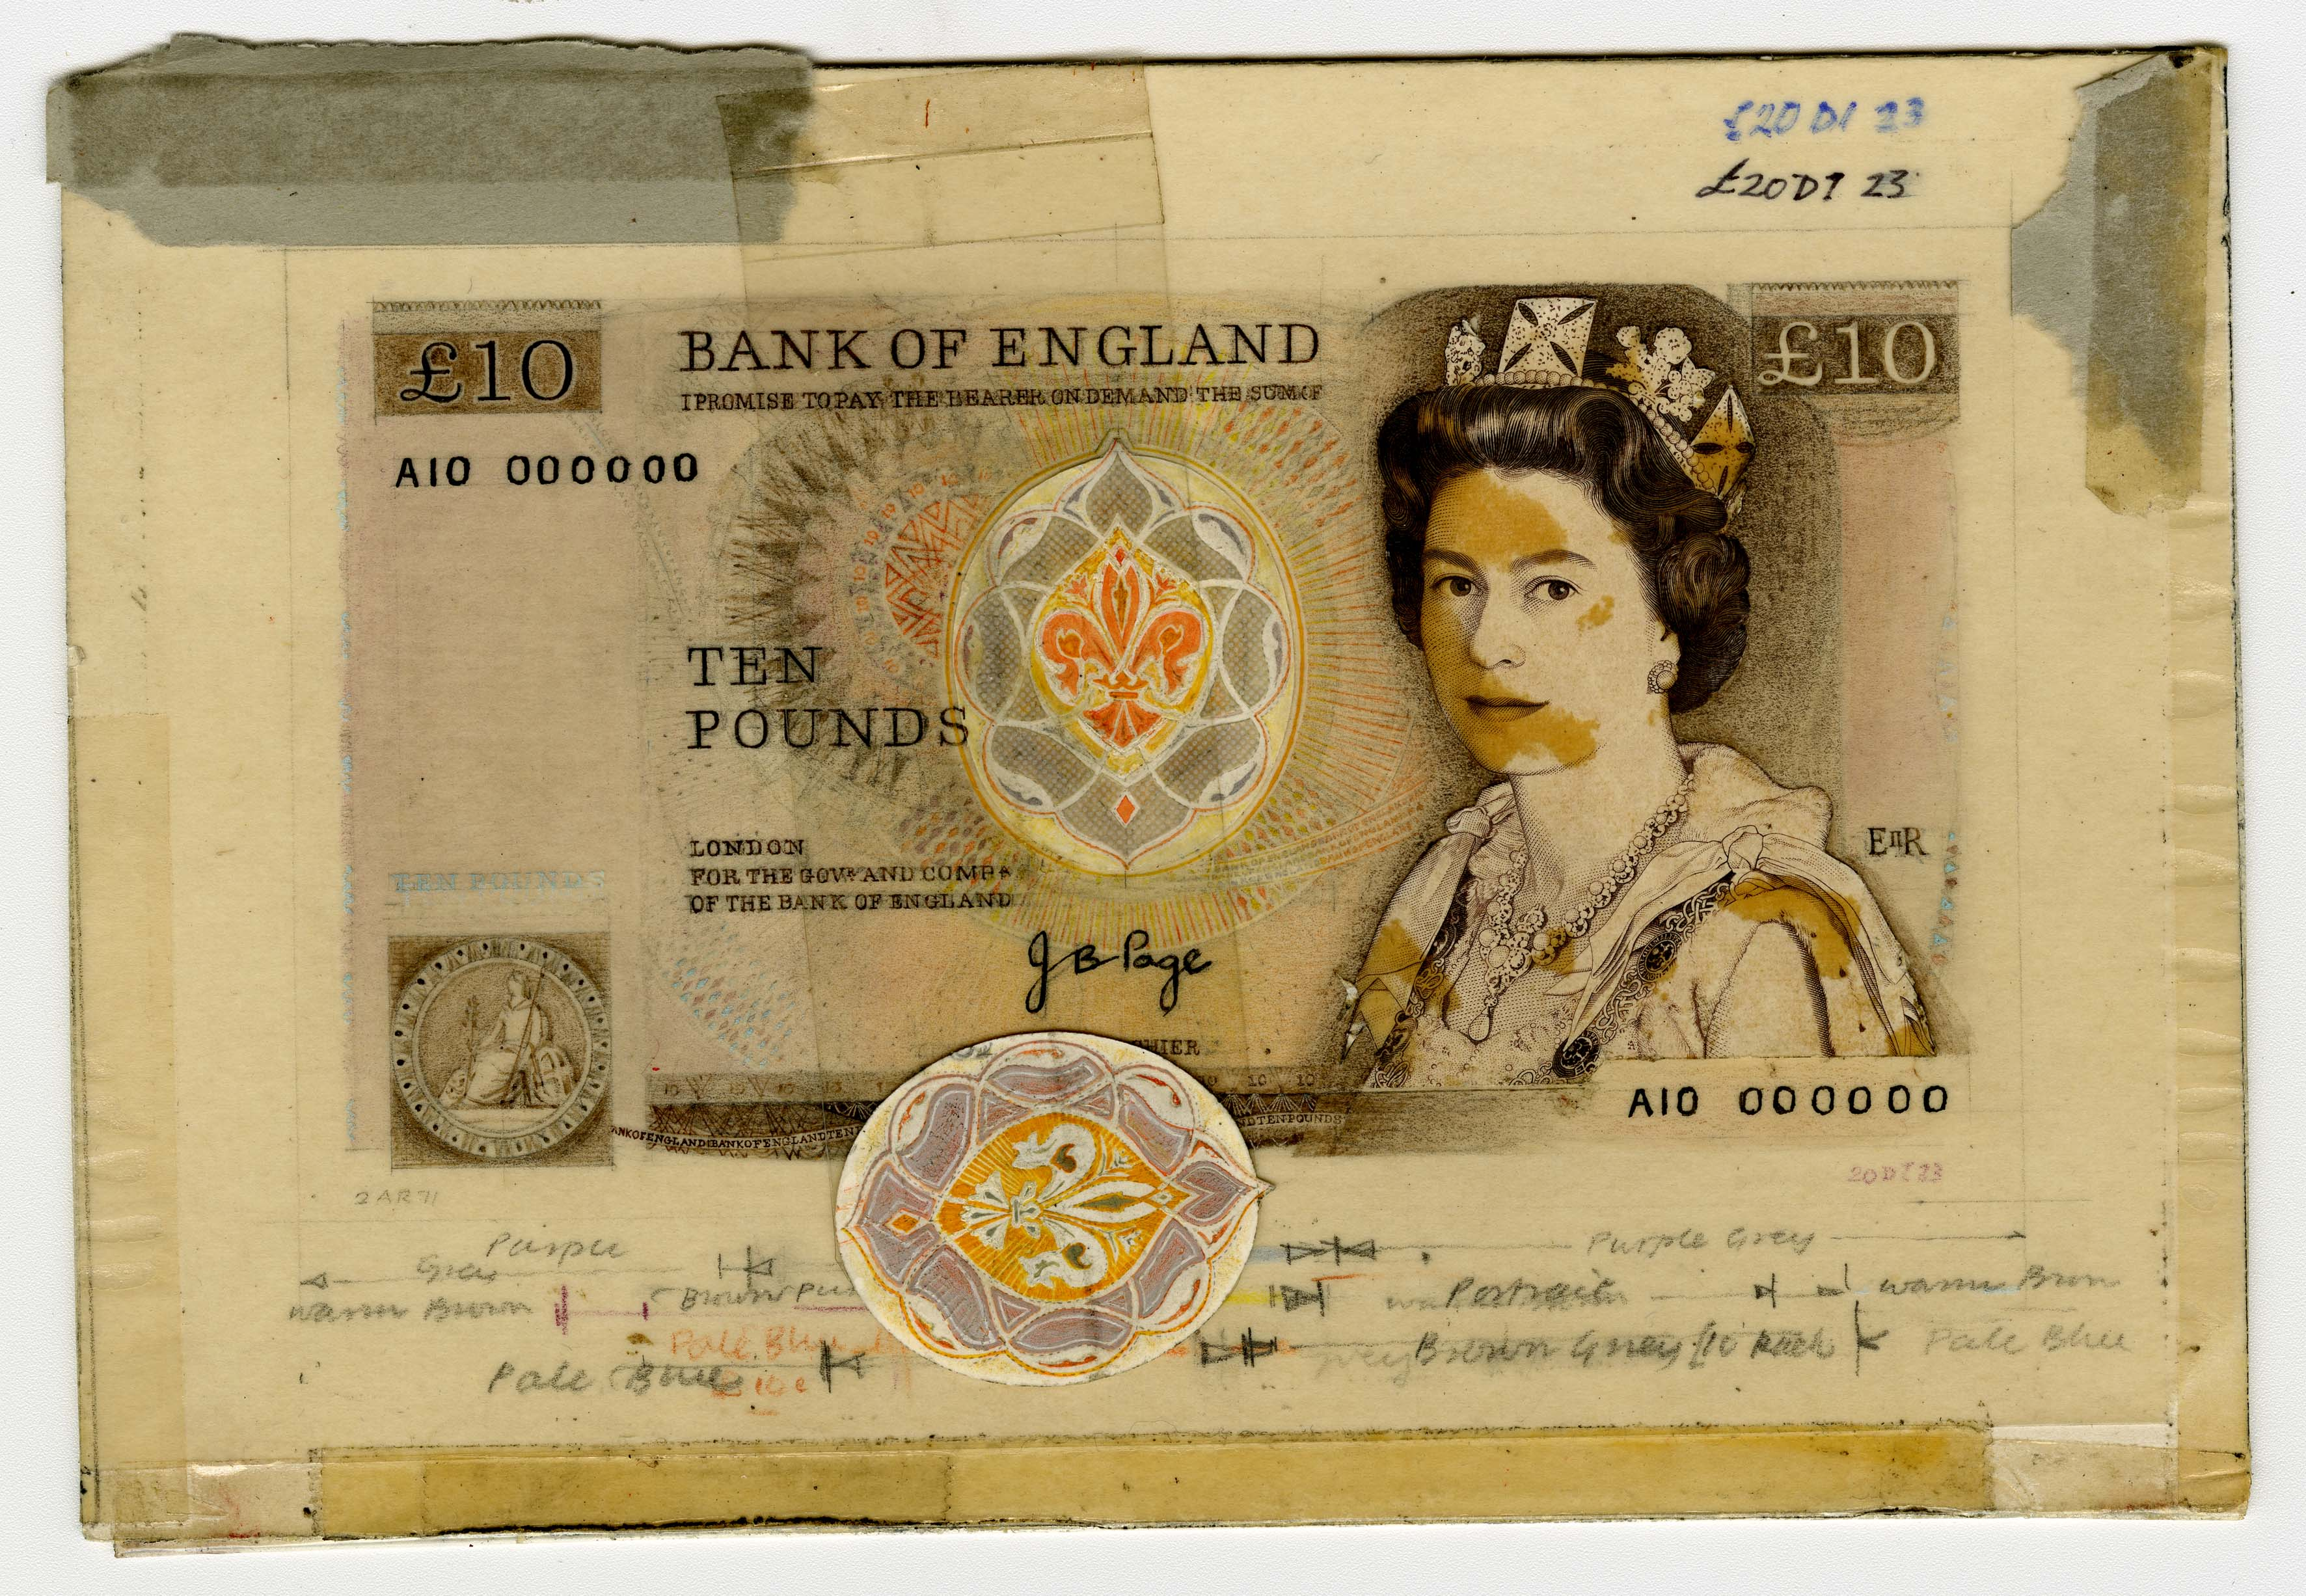 case_10__nightingale_obverse_pasteup_0.jpg - The art of bank note design - 6328